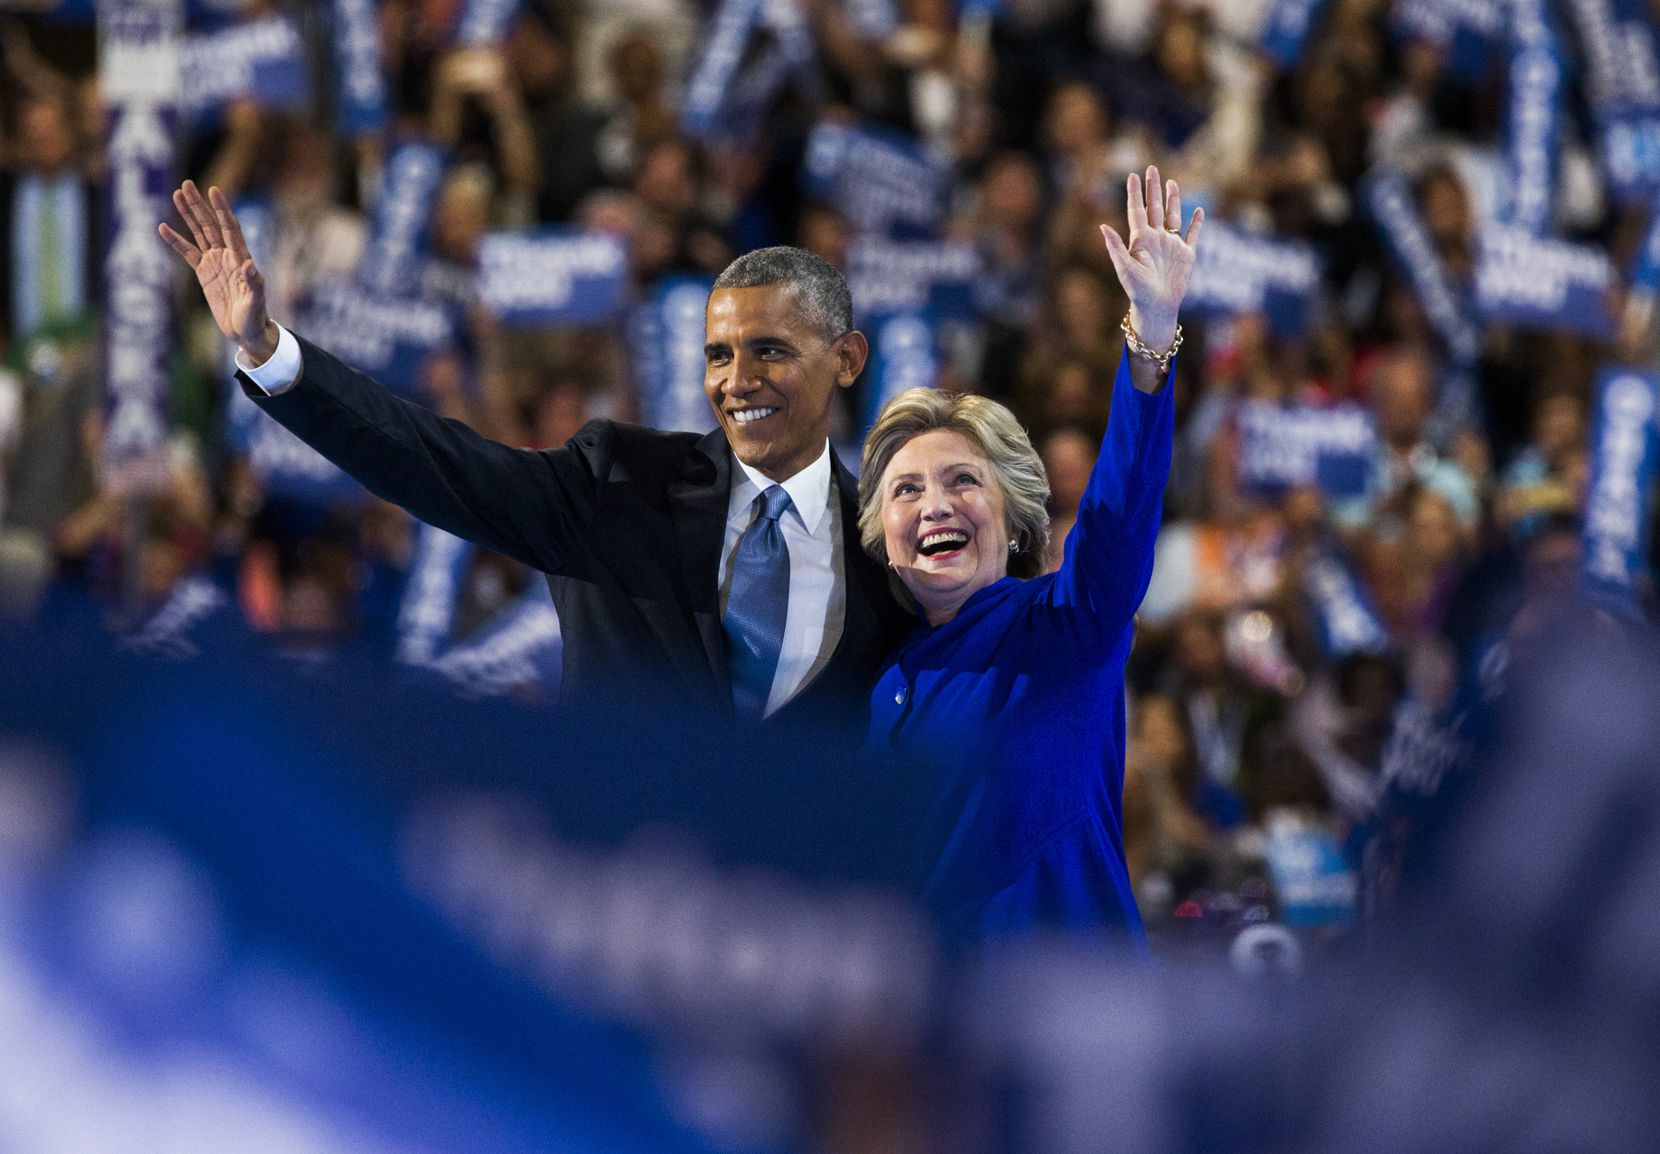 President Barack Obama and presidential candidate Hillary Clinton waved to supporters after Obama's speech Wednesday.